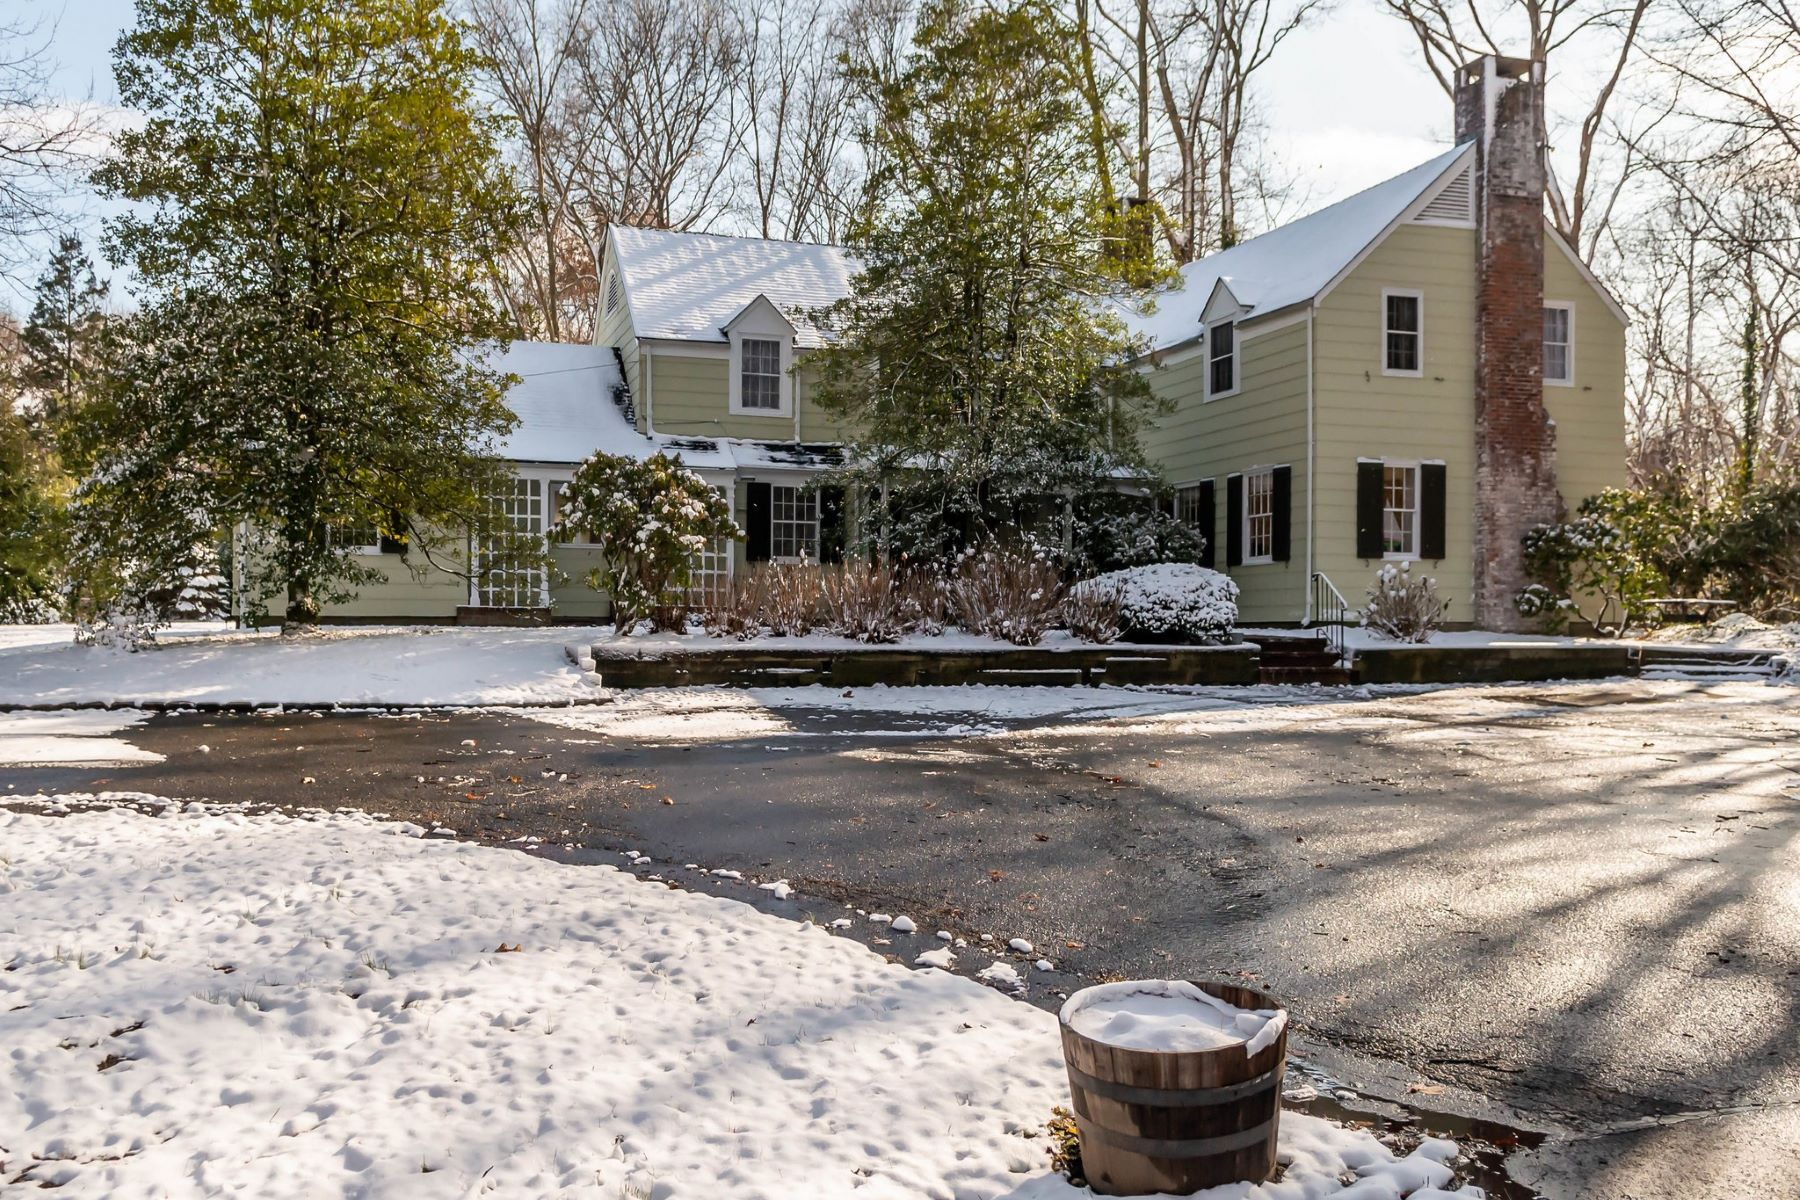 Single Family Homes for Sale at Cold Spring Hrbr 338 Woodbury Road Cold Spring Harbor, New York 11724 United States